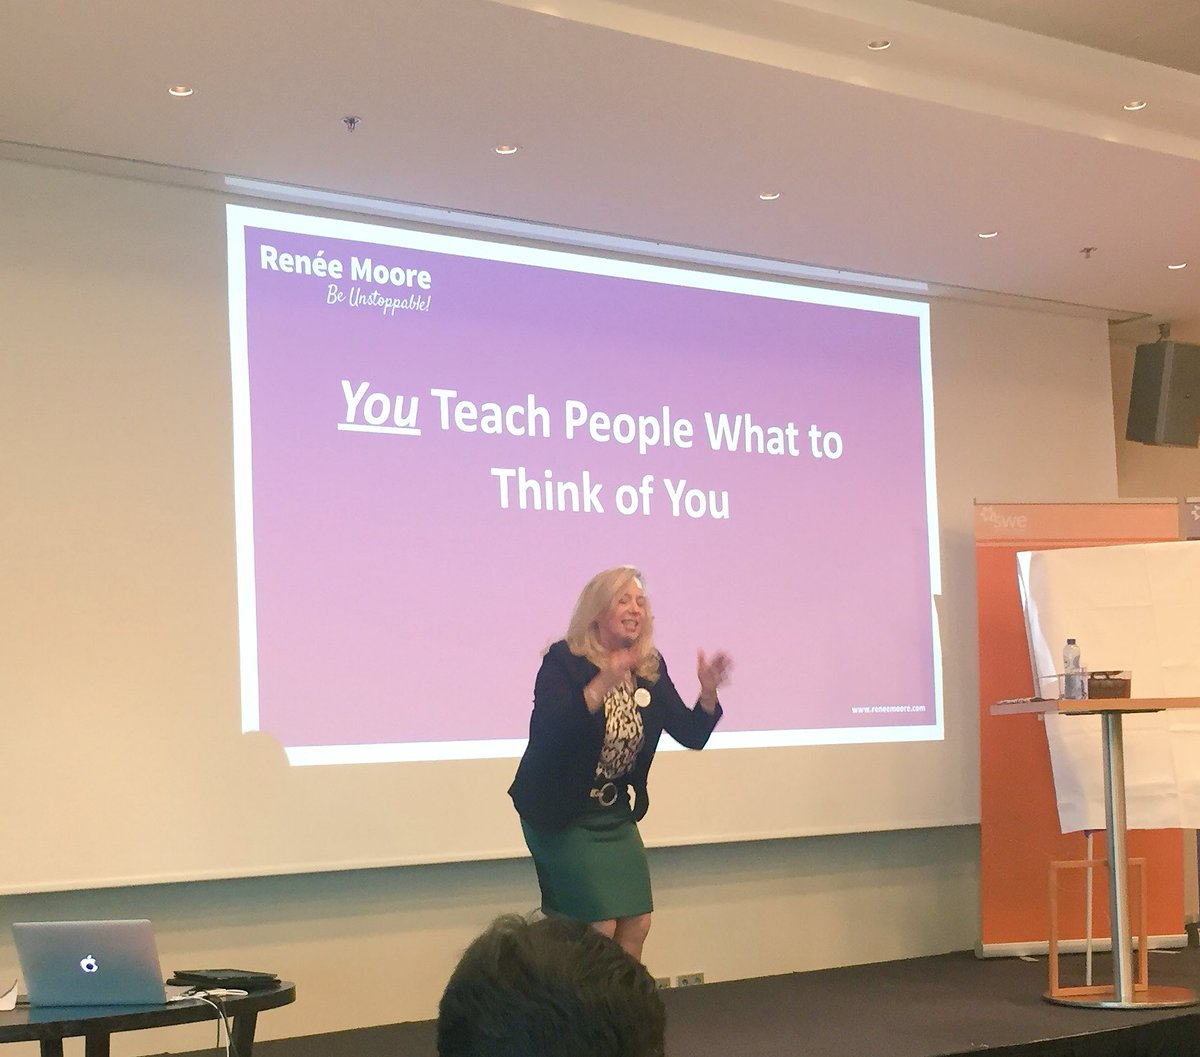 #Preach! YOU teach people what to think about you. @ReneeMooreBiz #WEAmsterdam <br>http://pic.twitter.com/iDdYCpxkc3